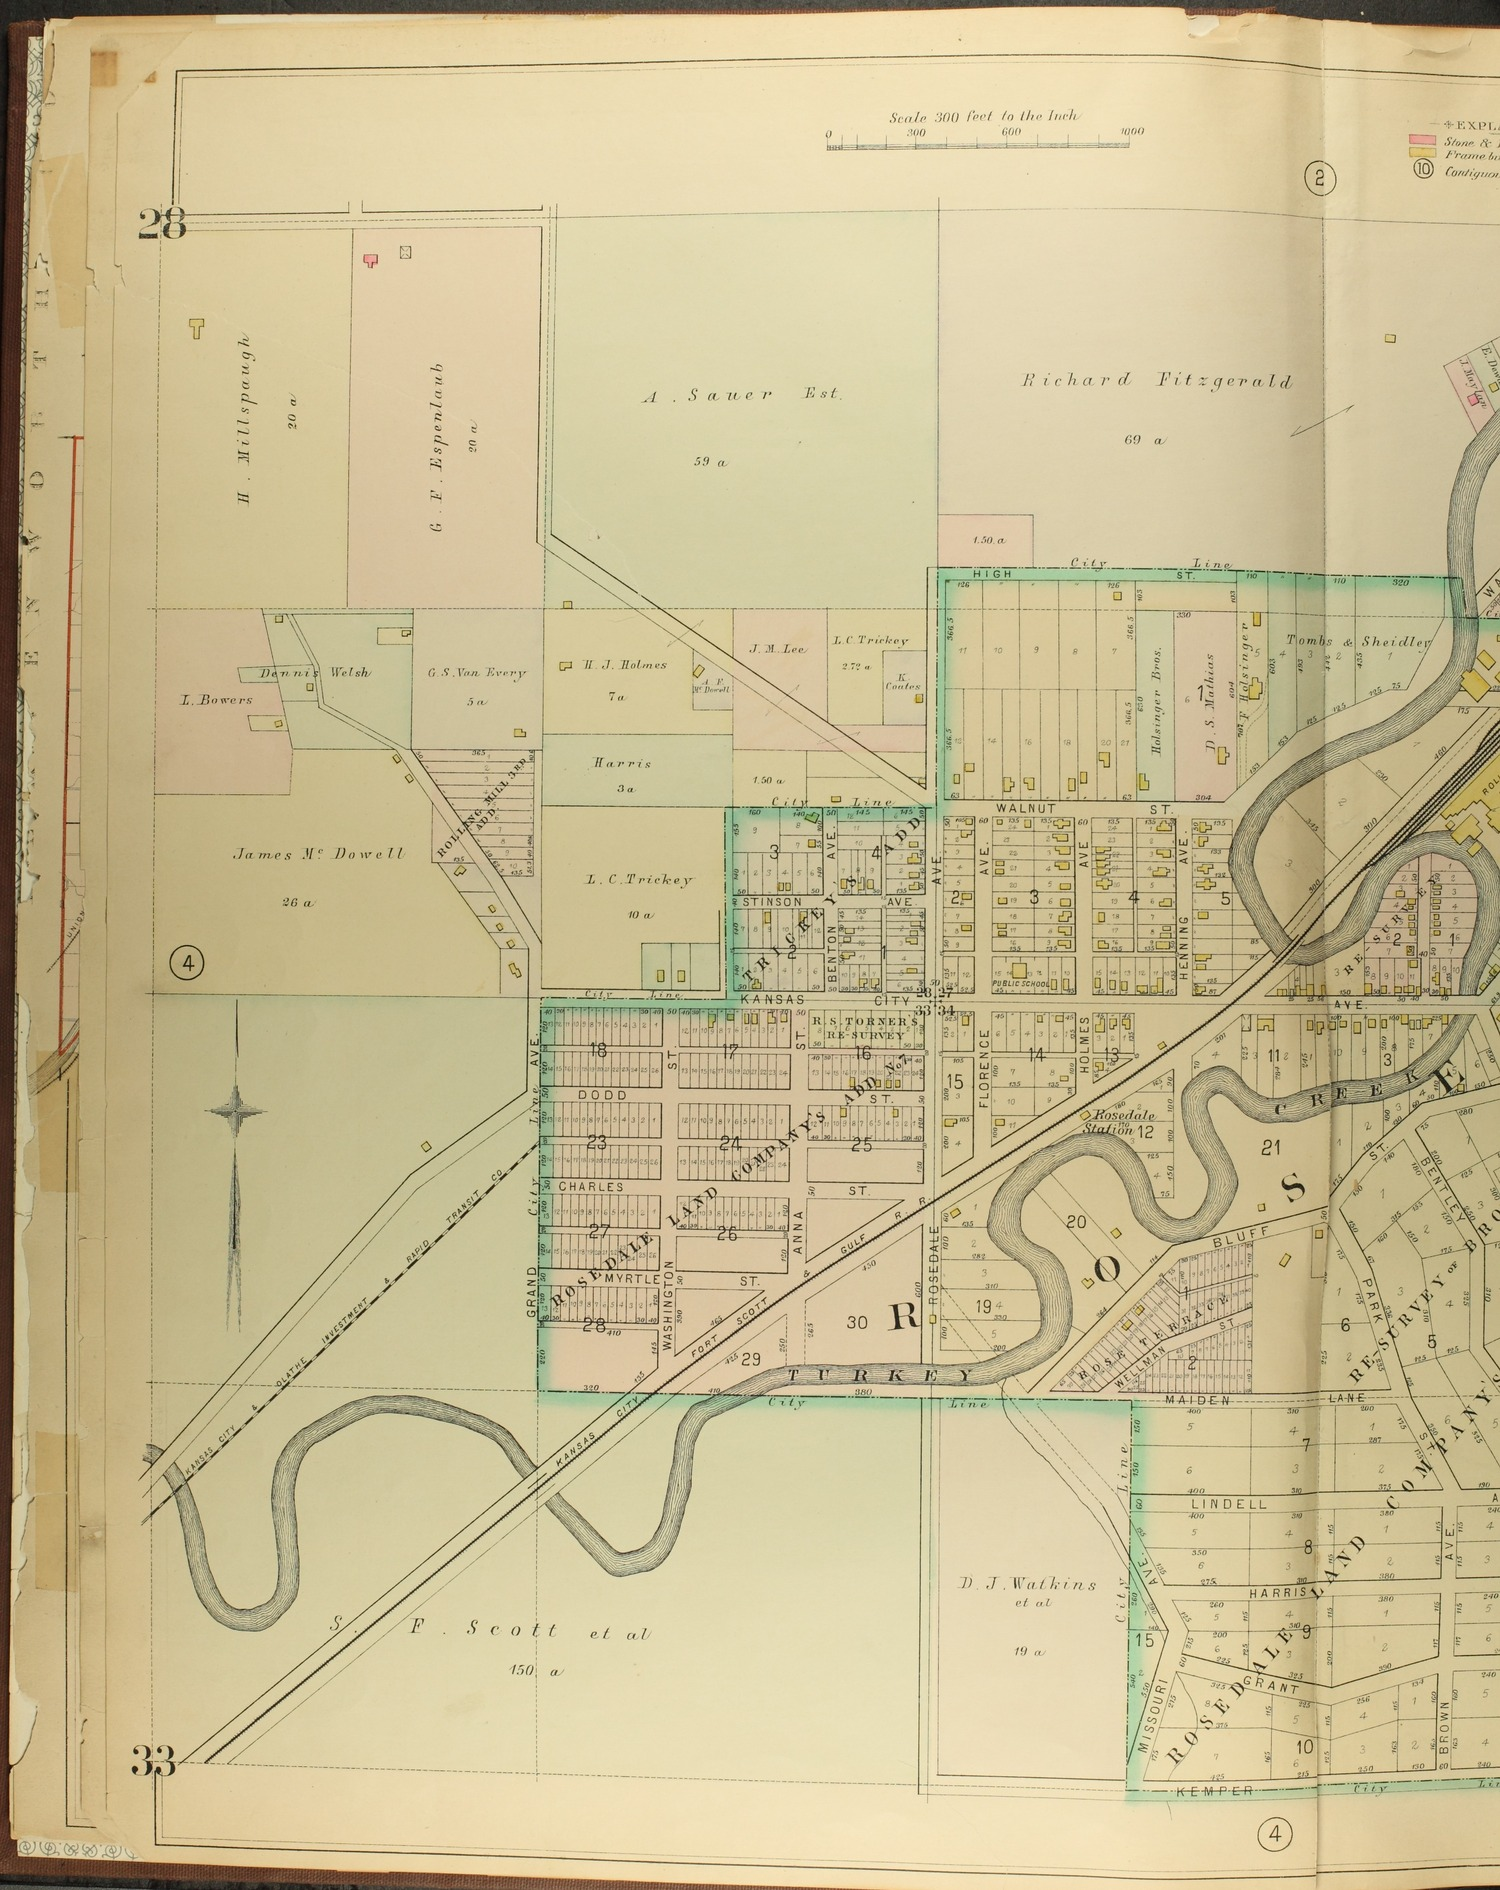 A complete set of surveys and plats or properties in Wyandotte County and Kansas City Kansas - 4